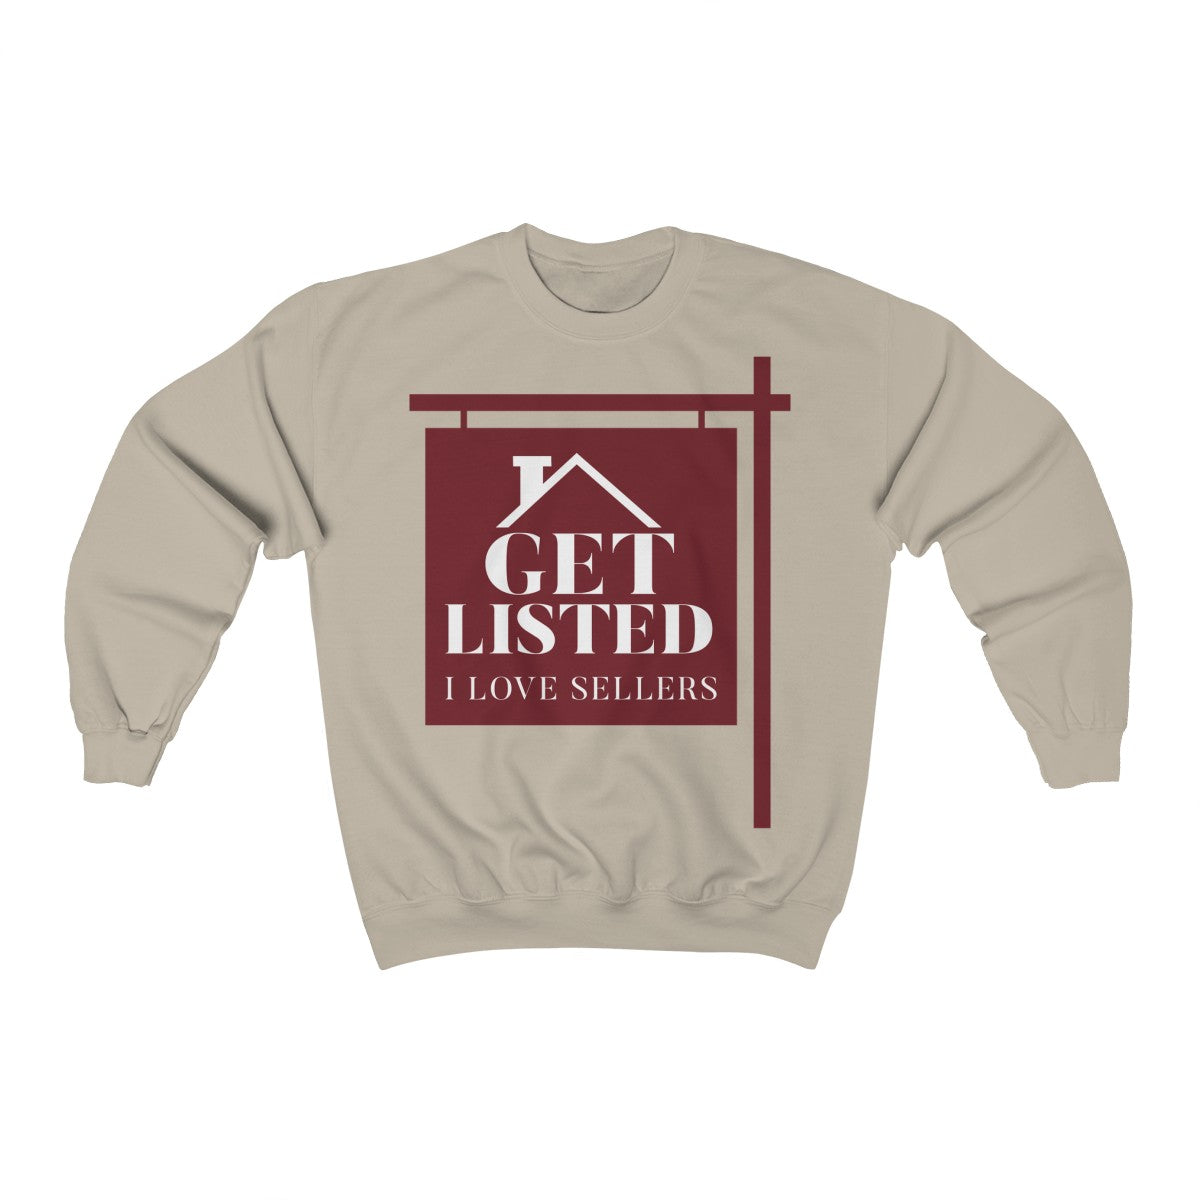 Get Listed! I Love Sellers™ Crewneck Sweatshirt